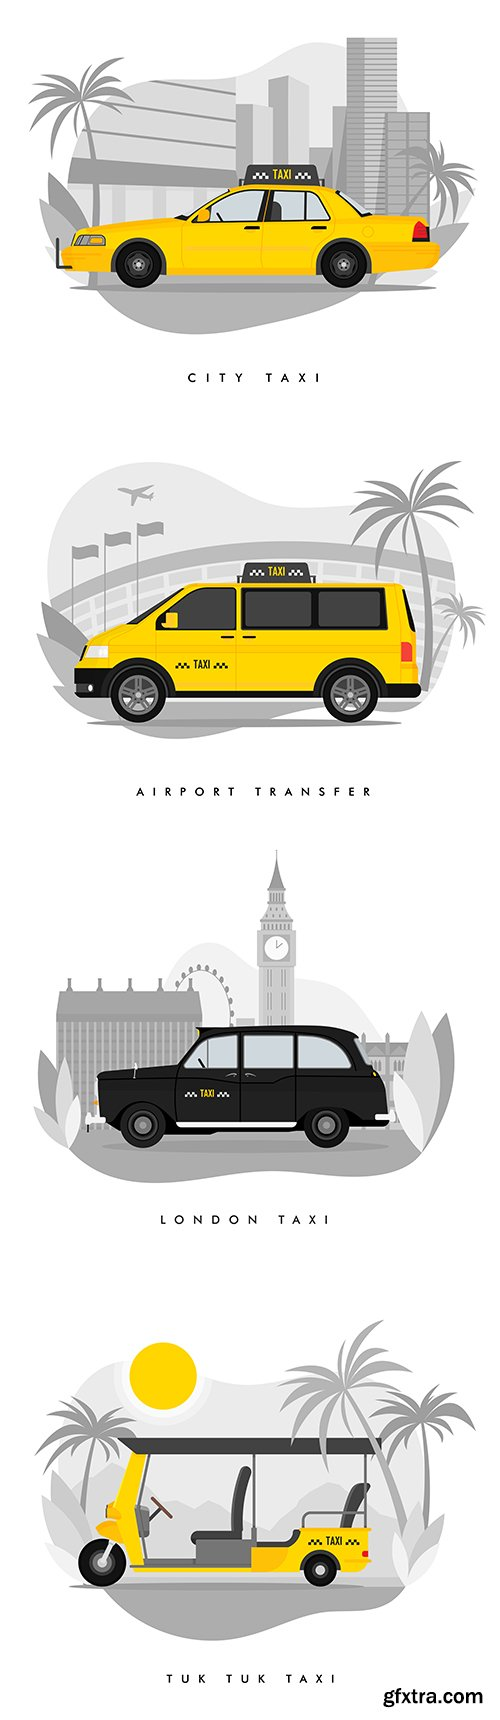 Taxi Services in the city Flat Cartoon Illustrations